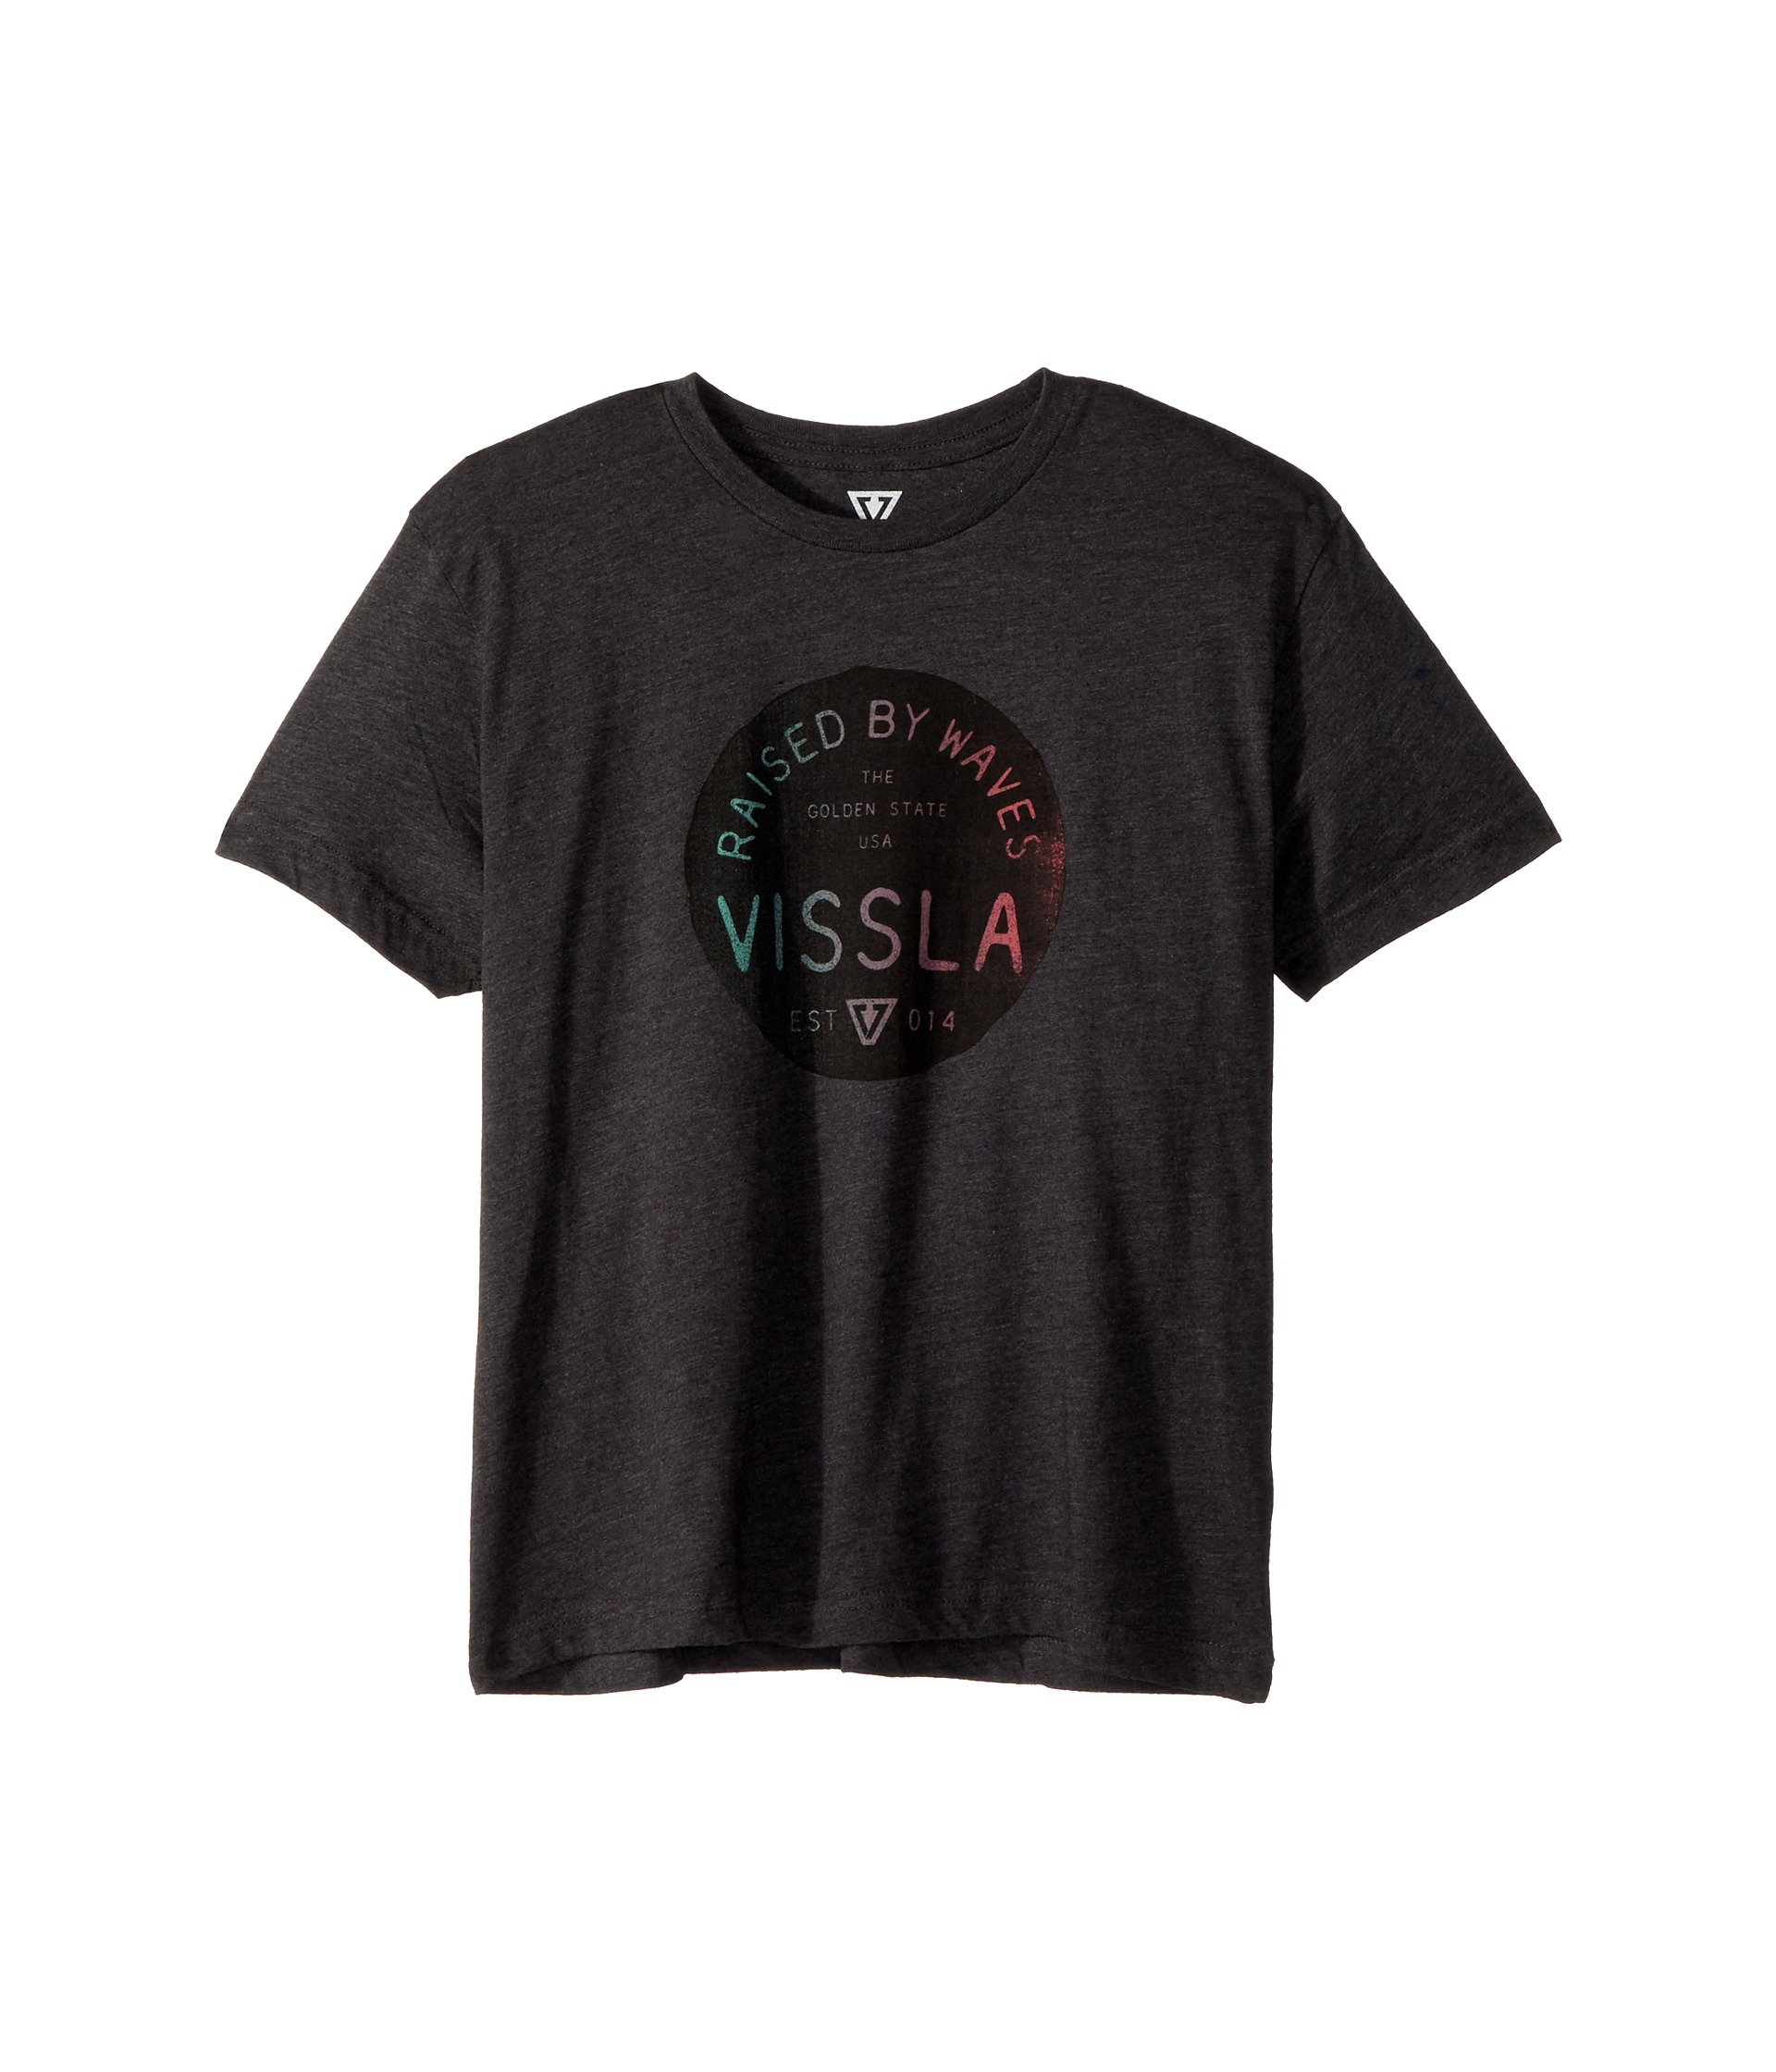 VISSLA Kids Shine On T-Shirt (Big Kids) at Zappos.com